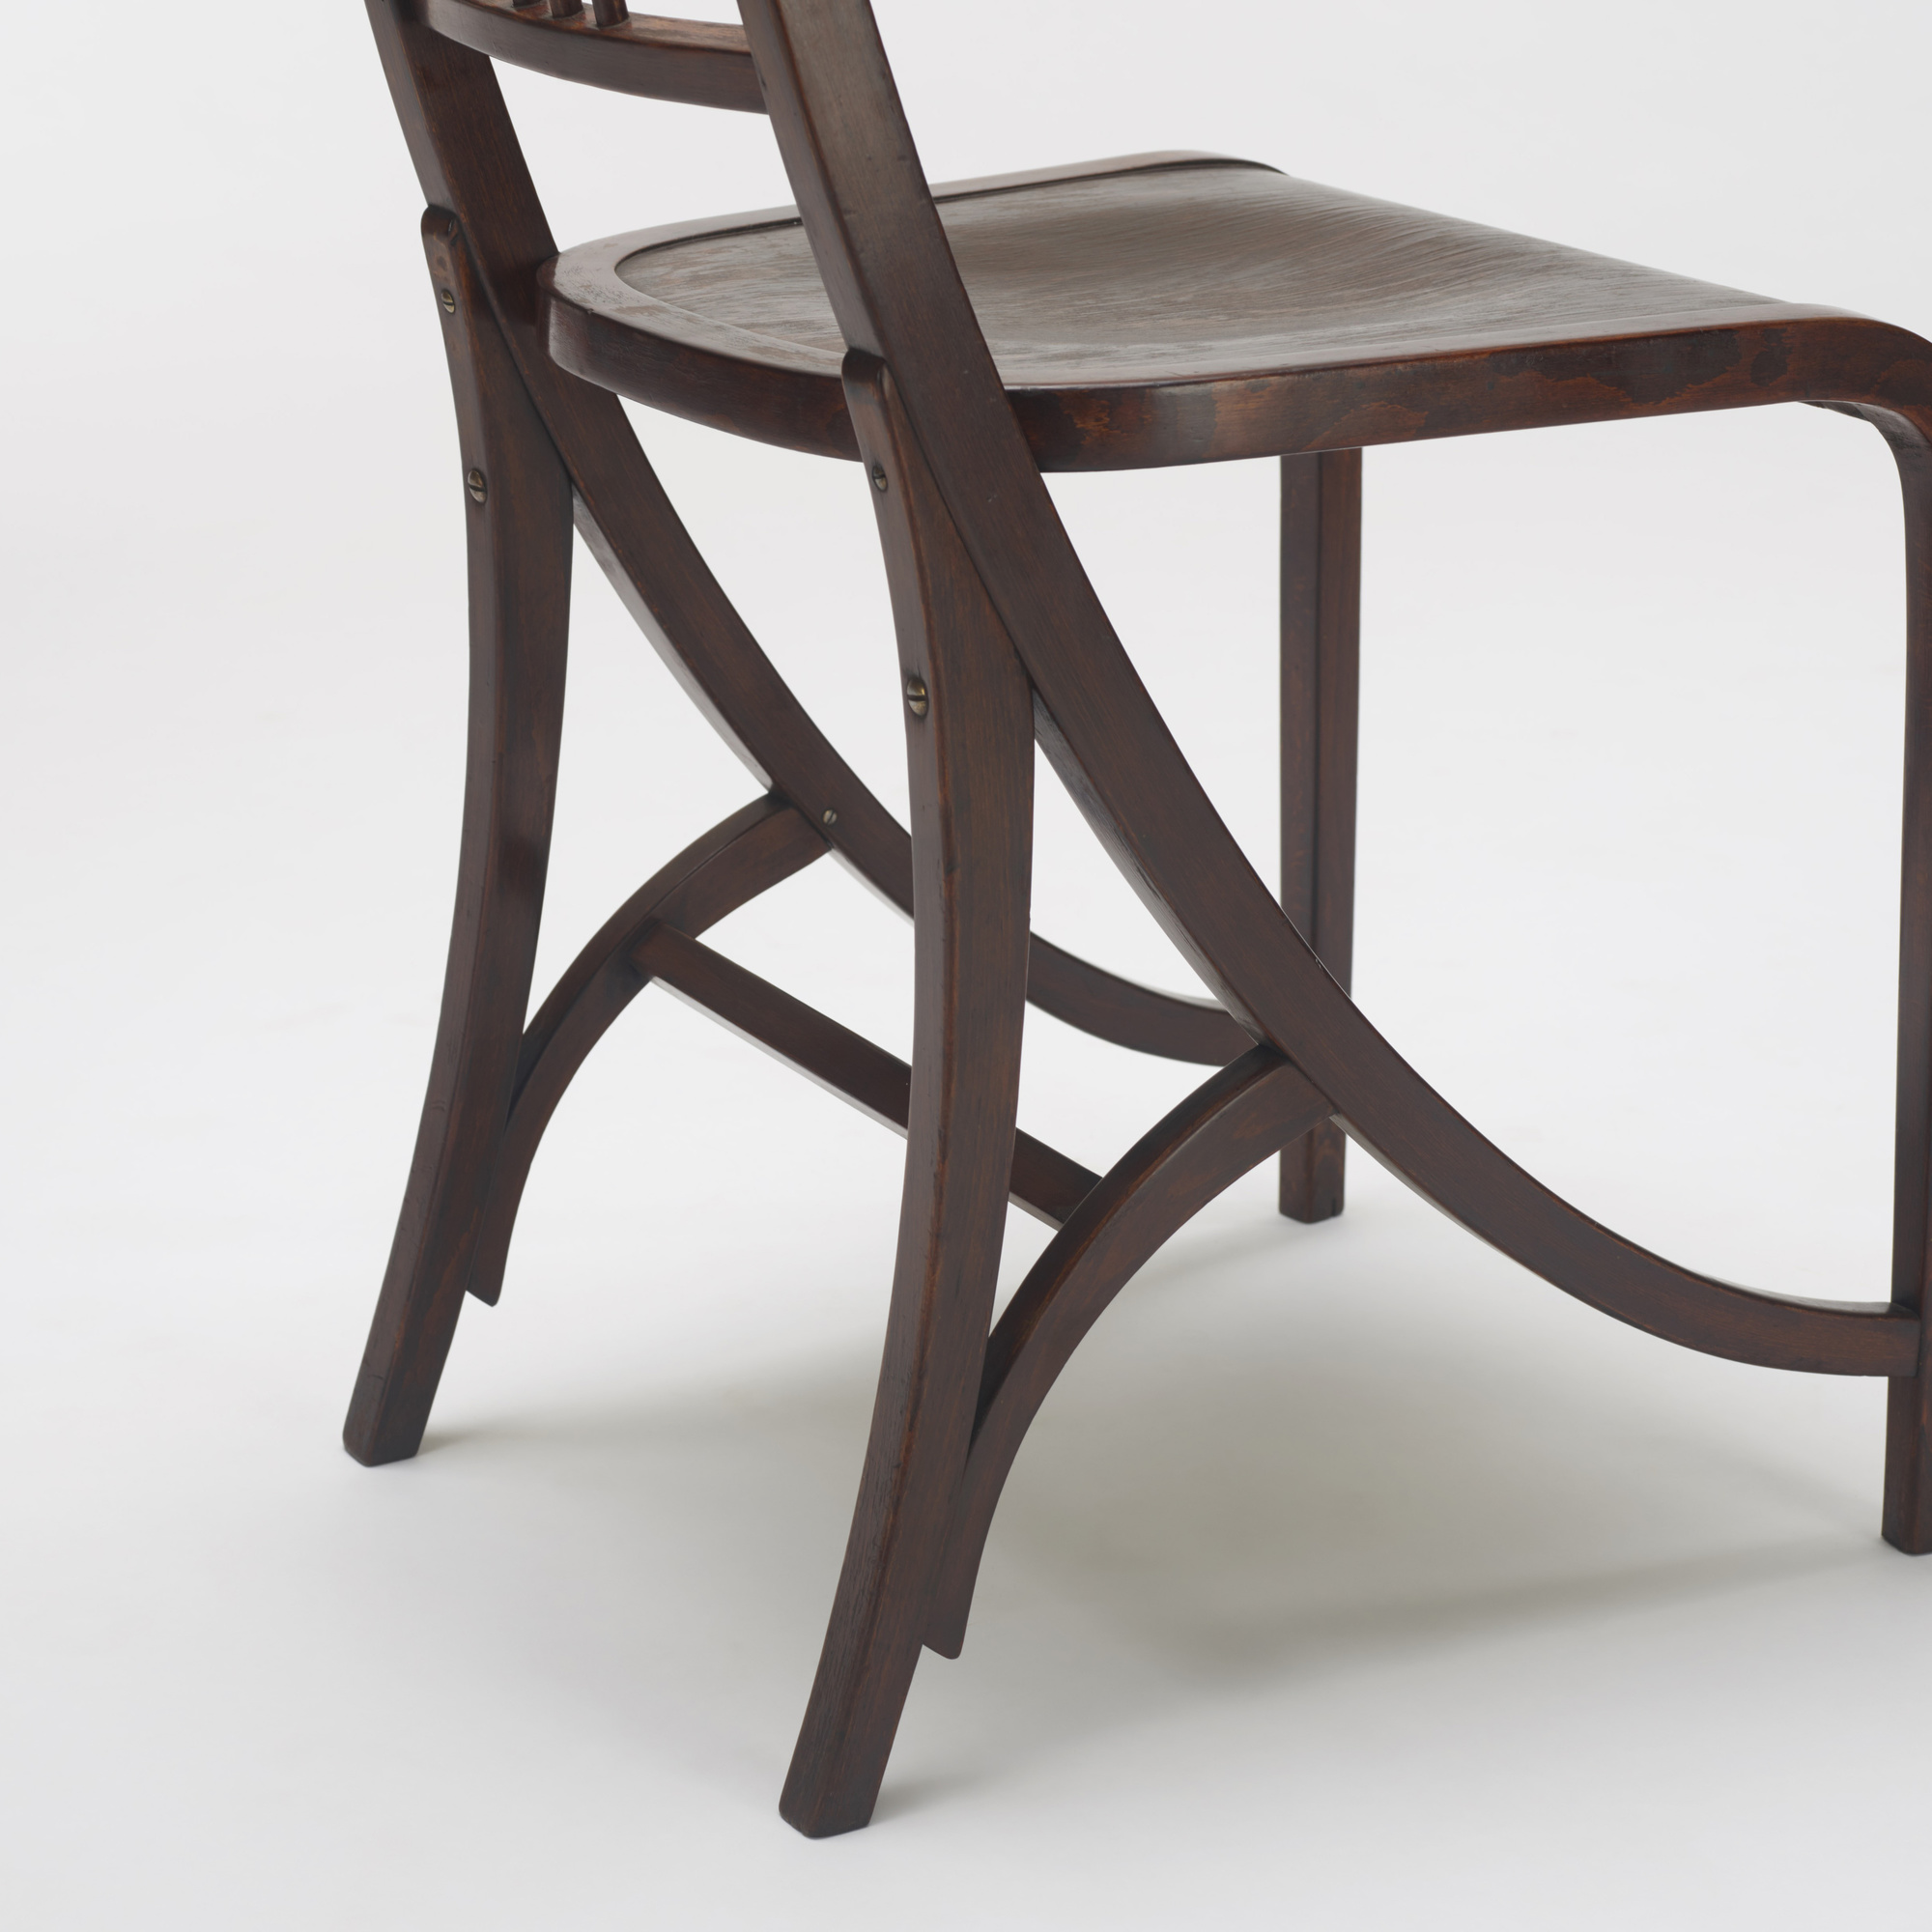 242: Thonet / chair, model 511 (3 of 4)